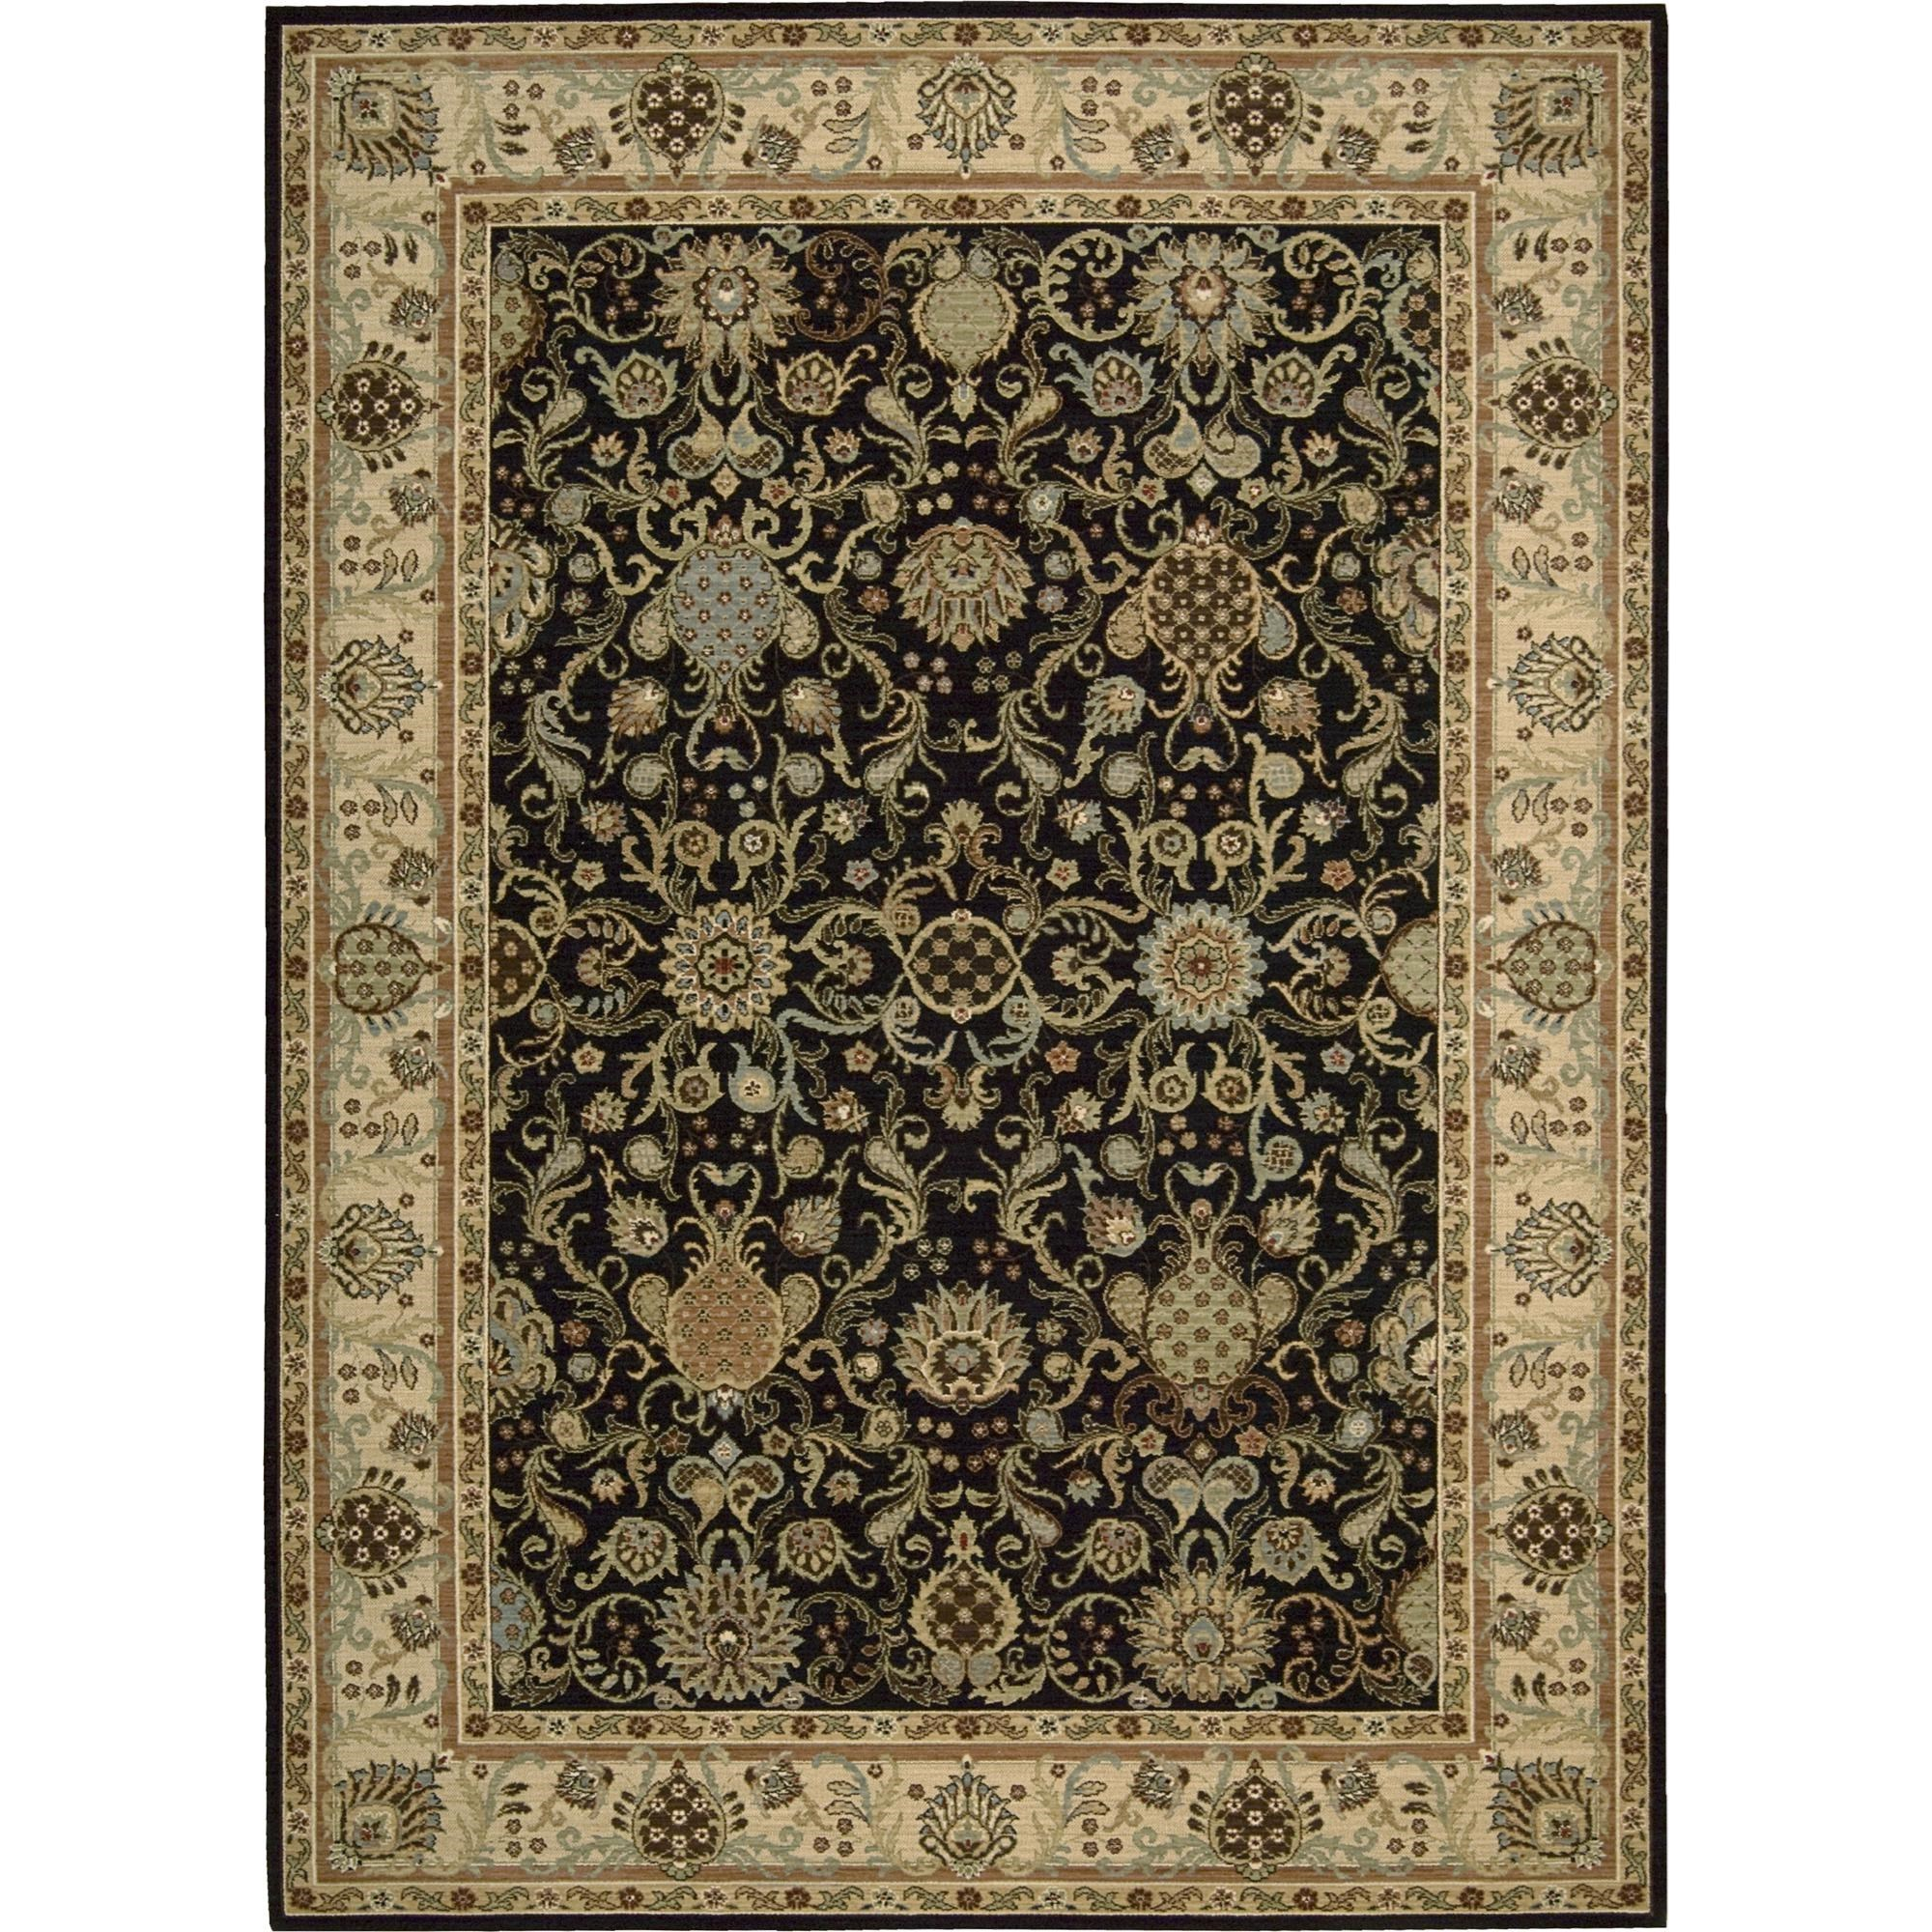 "Nourison Kathy Ireland Home presents Lumiere 9'6"" x 13' Onyx Area Rug - Item Number: 04359"